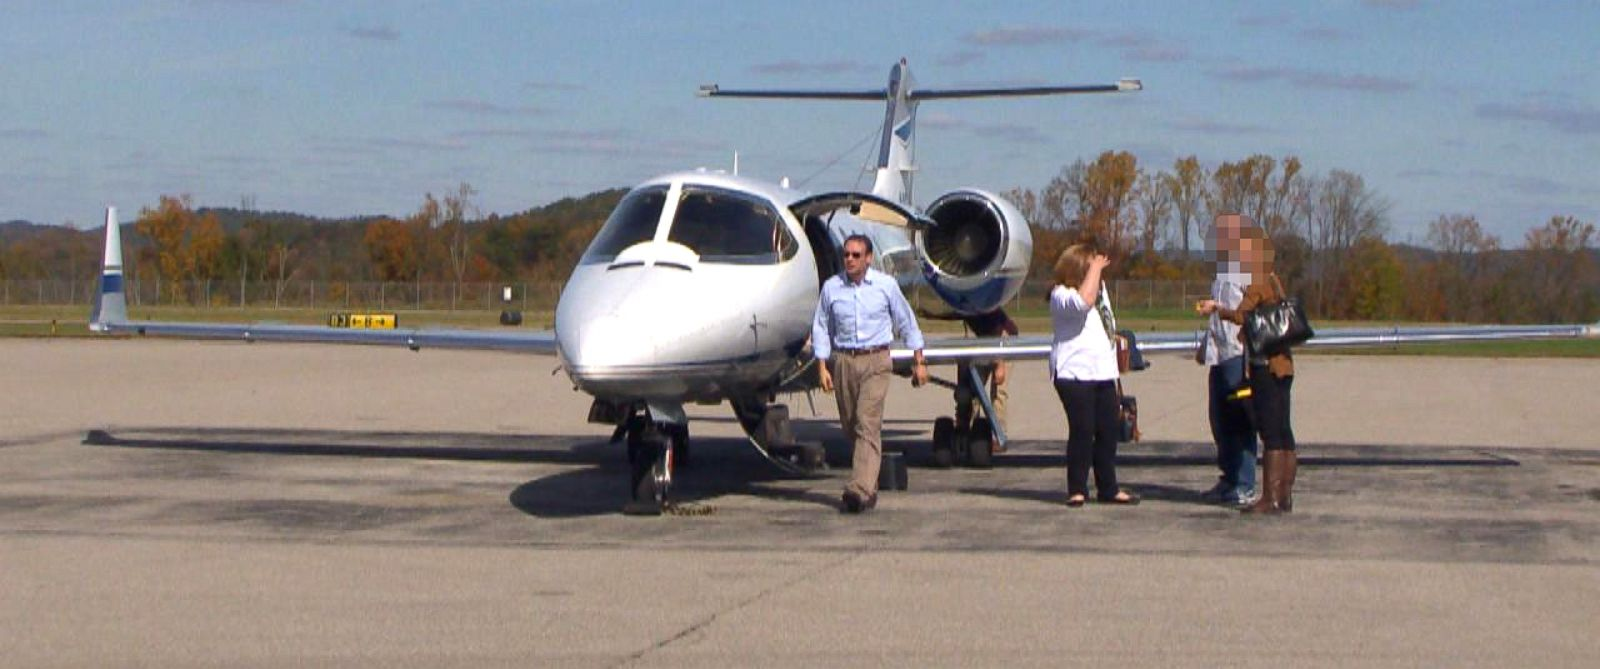 PHOTO: Attorney Michael Fuller, left, and colleagues arrive in West Virginia on Fullers private plane.